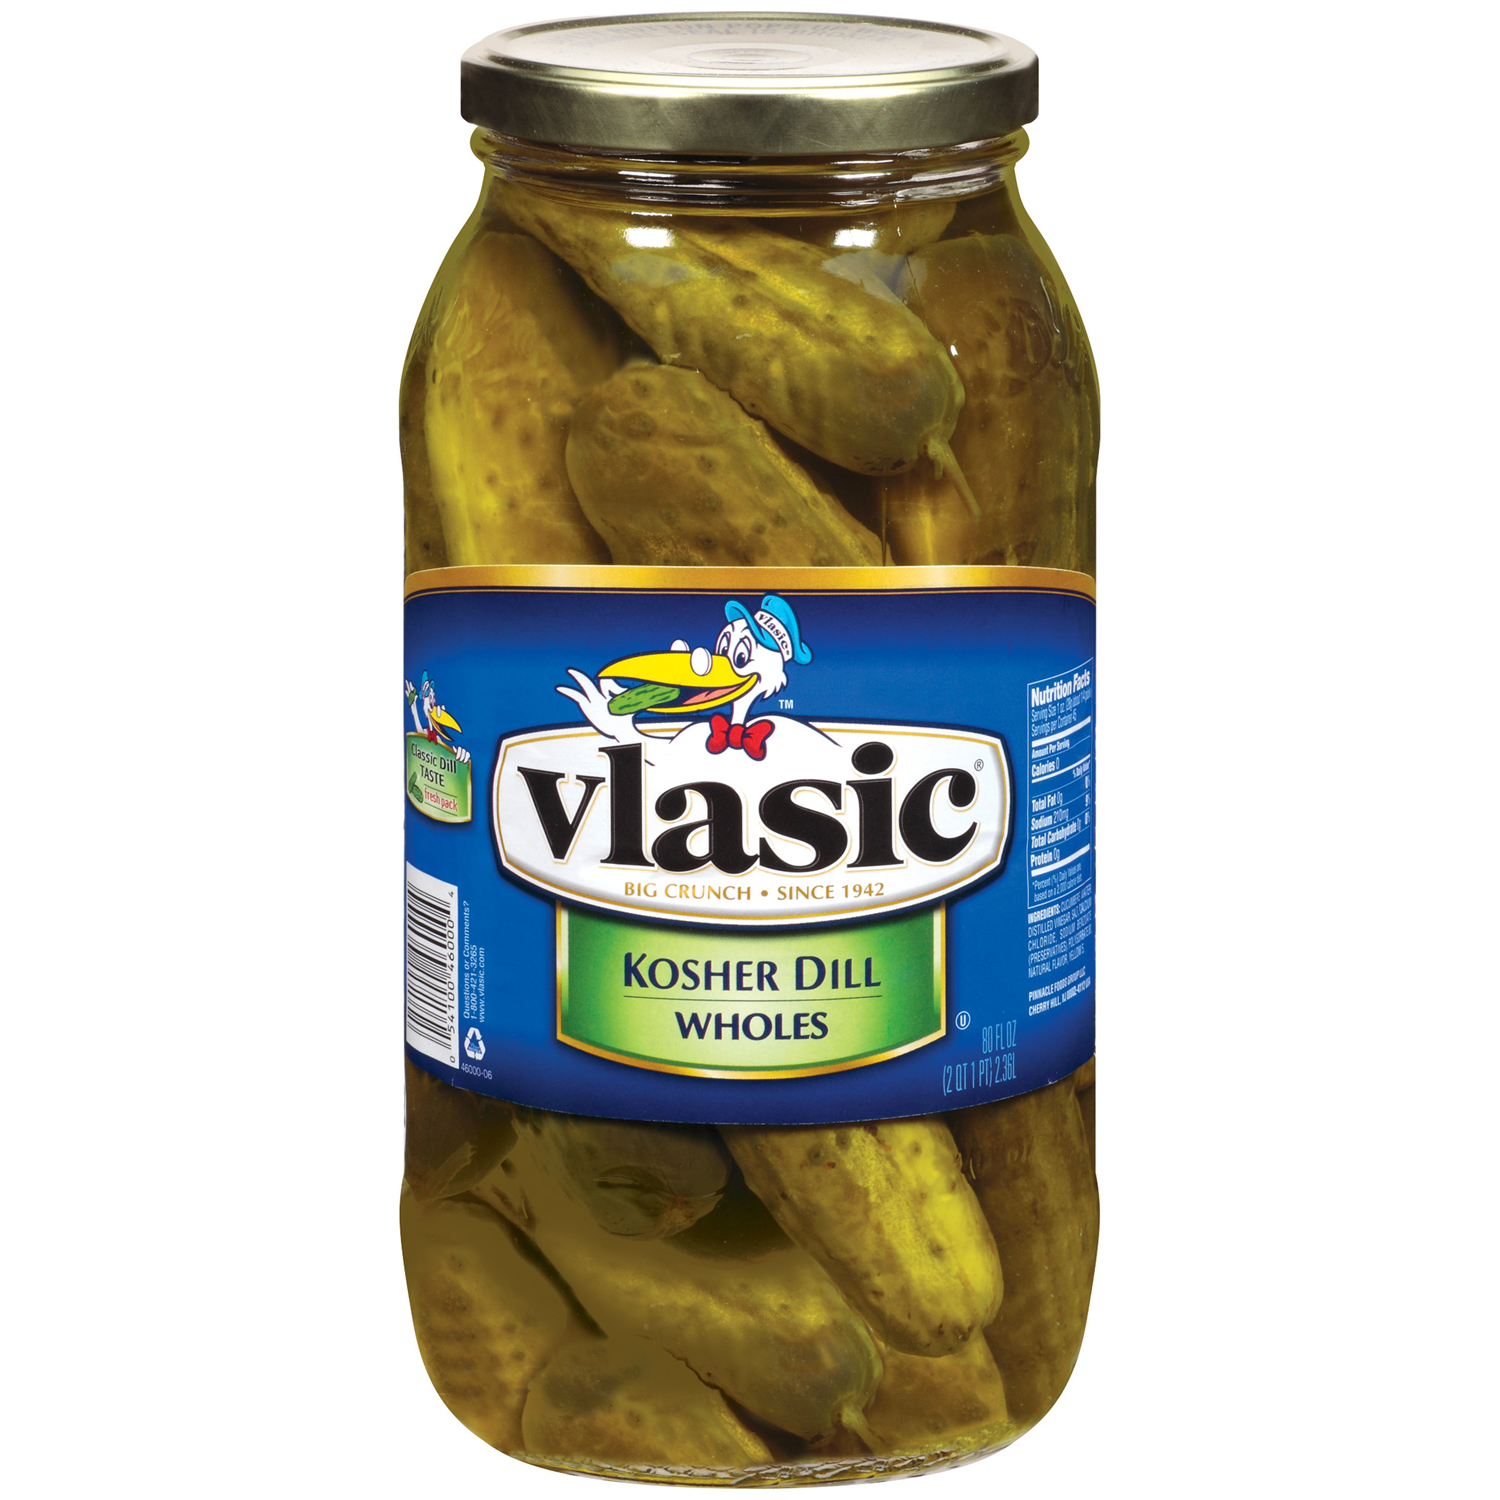 how to get the pickle smell out of a jar